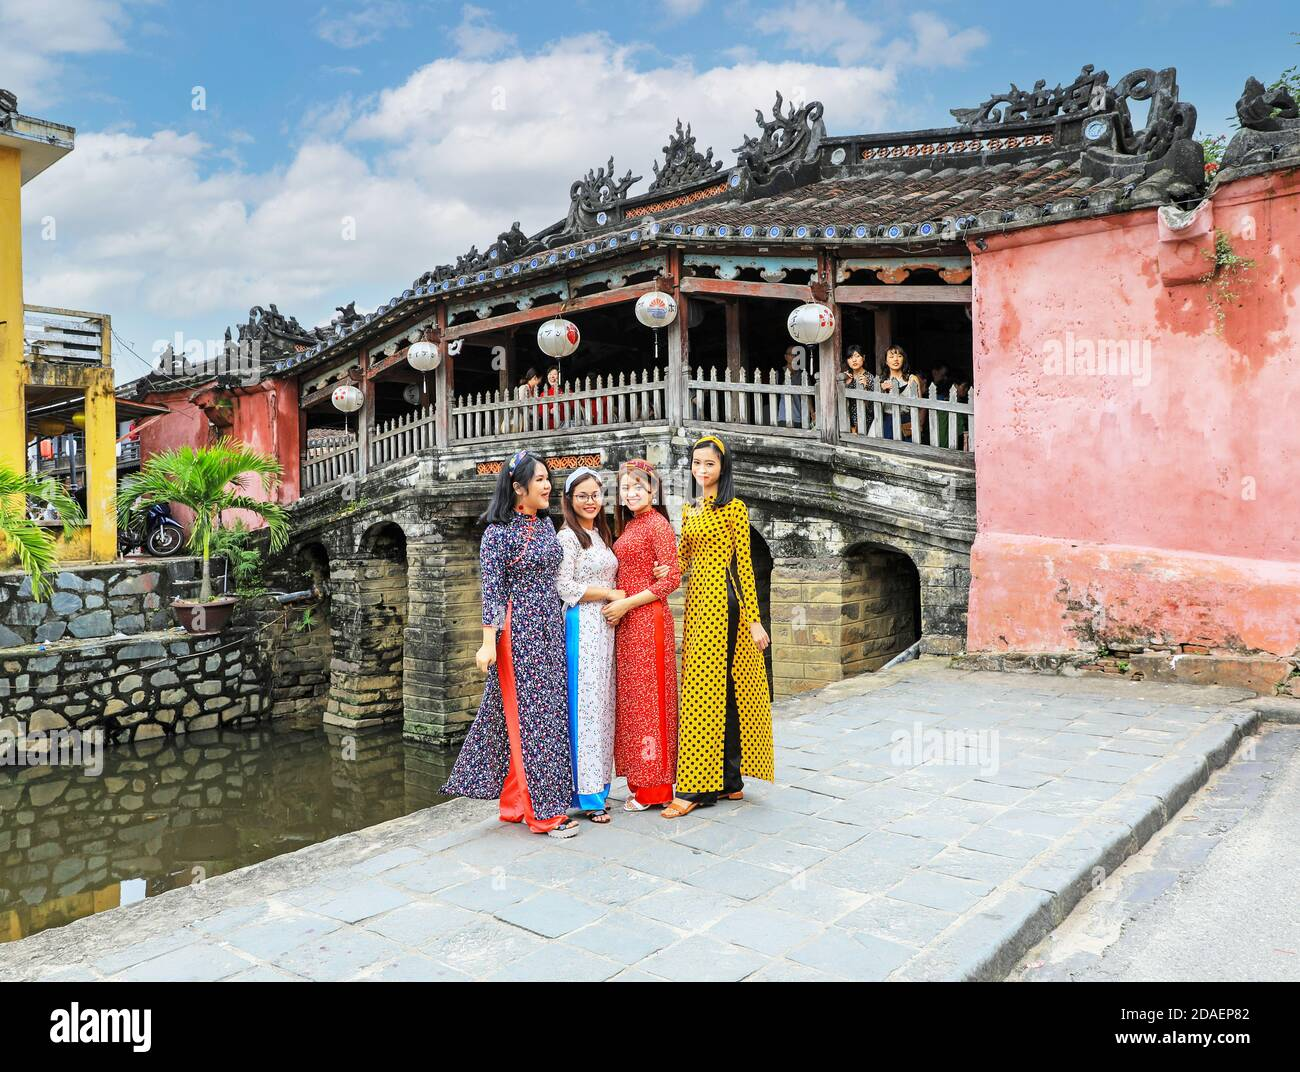 four-vietnamese-young-ladies-in-traditional-dress-the-ao-dai-posing-for-a-photograph-at-the-japanese-covered-bridge-hoi-an-vietnam-asia-2DAEP82.jpg